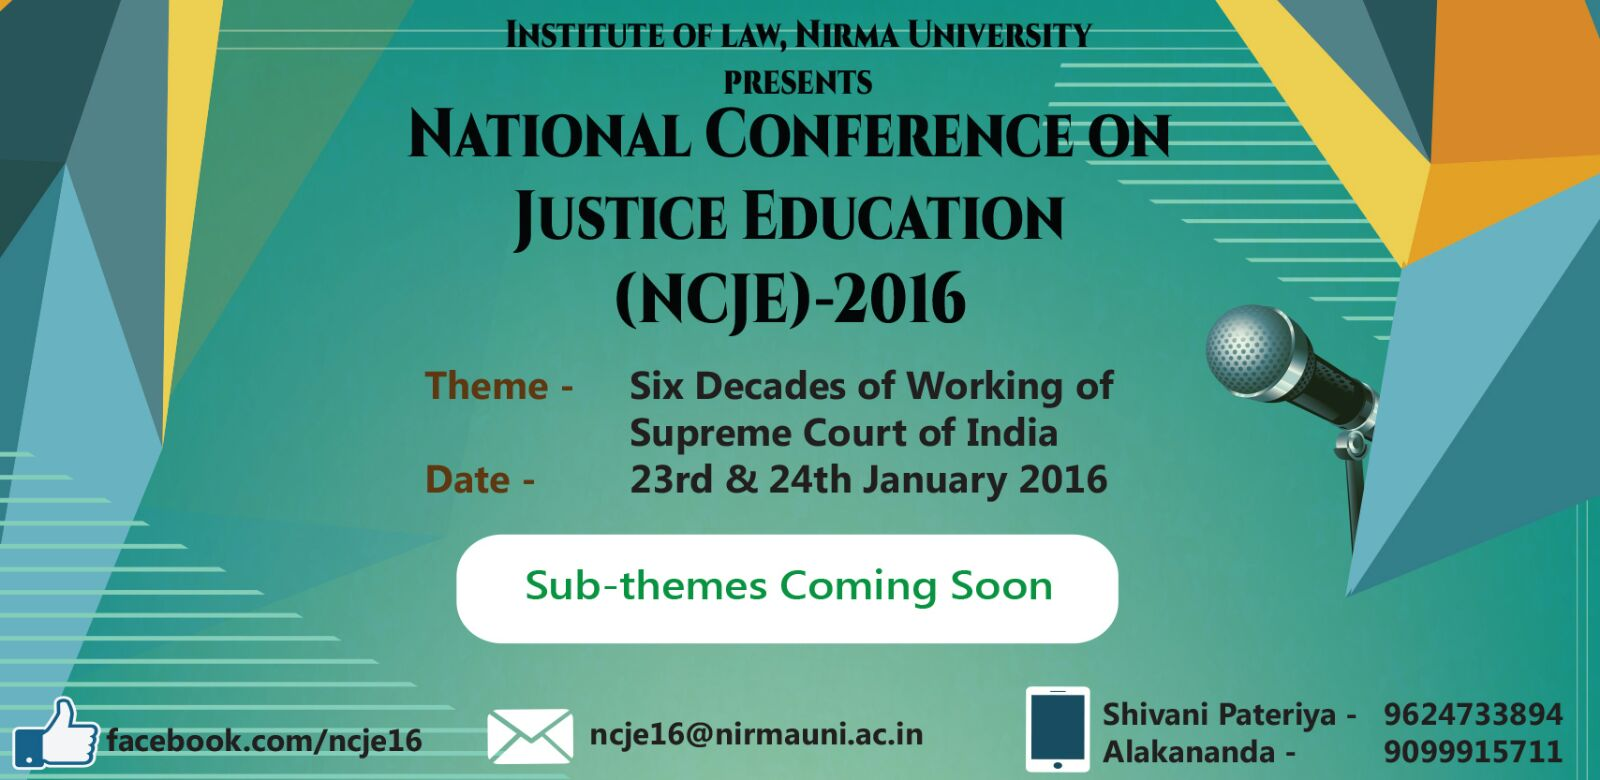 Conference on Justice Education